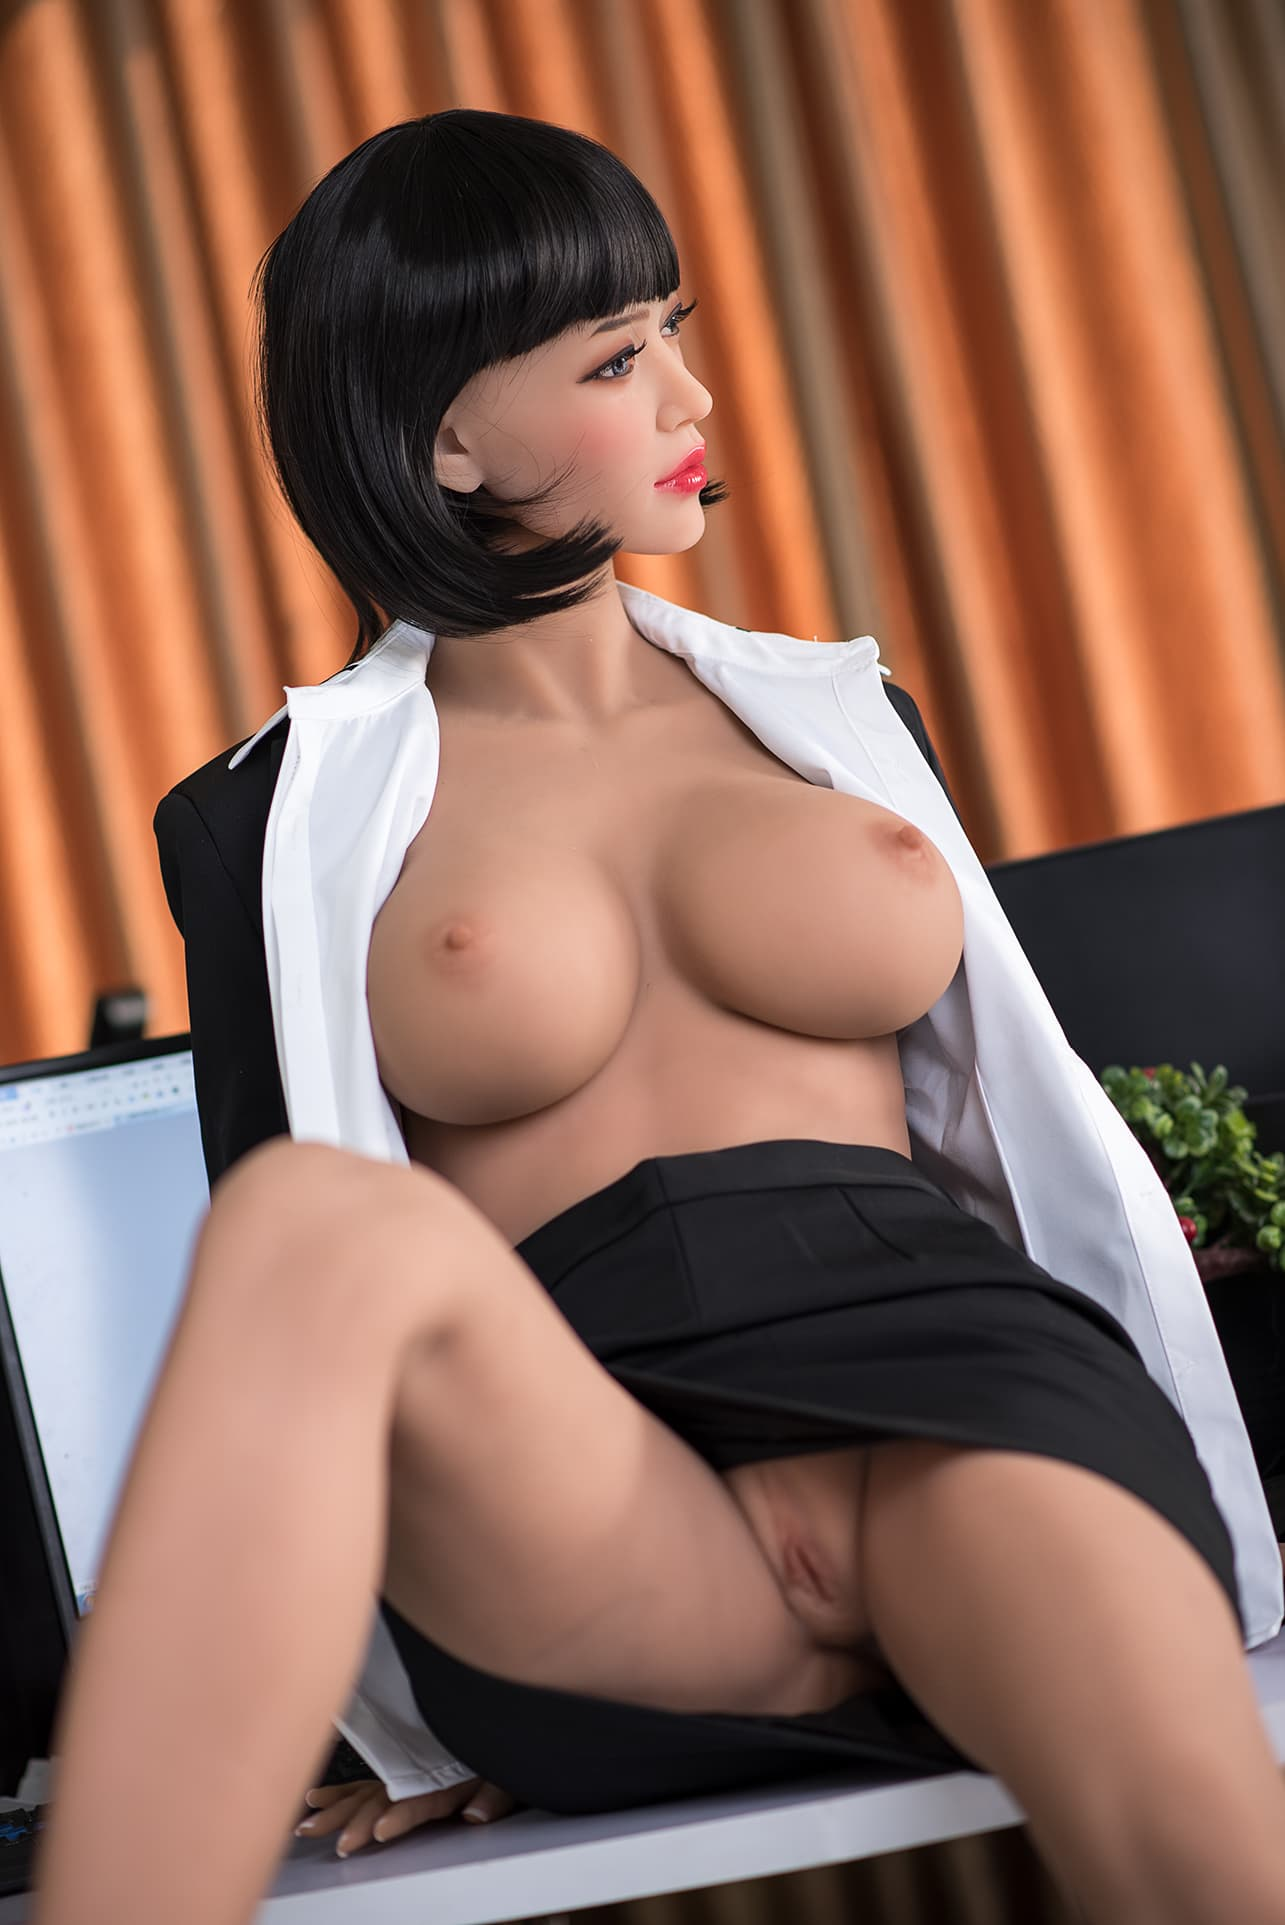 phranc 165cm black hair big boobs athletic tpe sex doll(8)